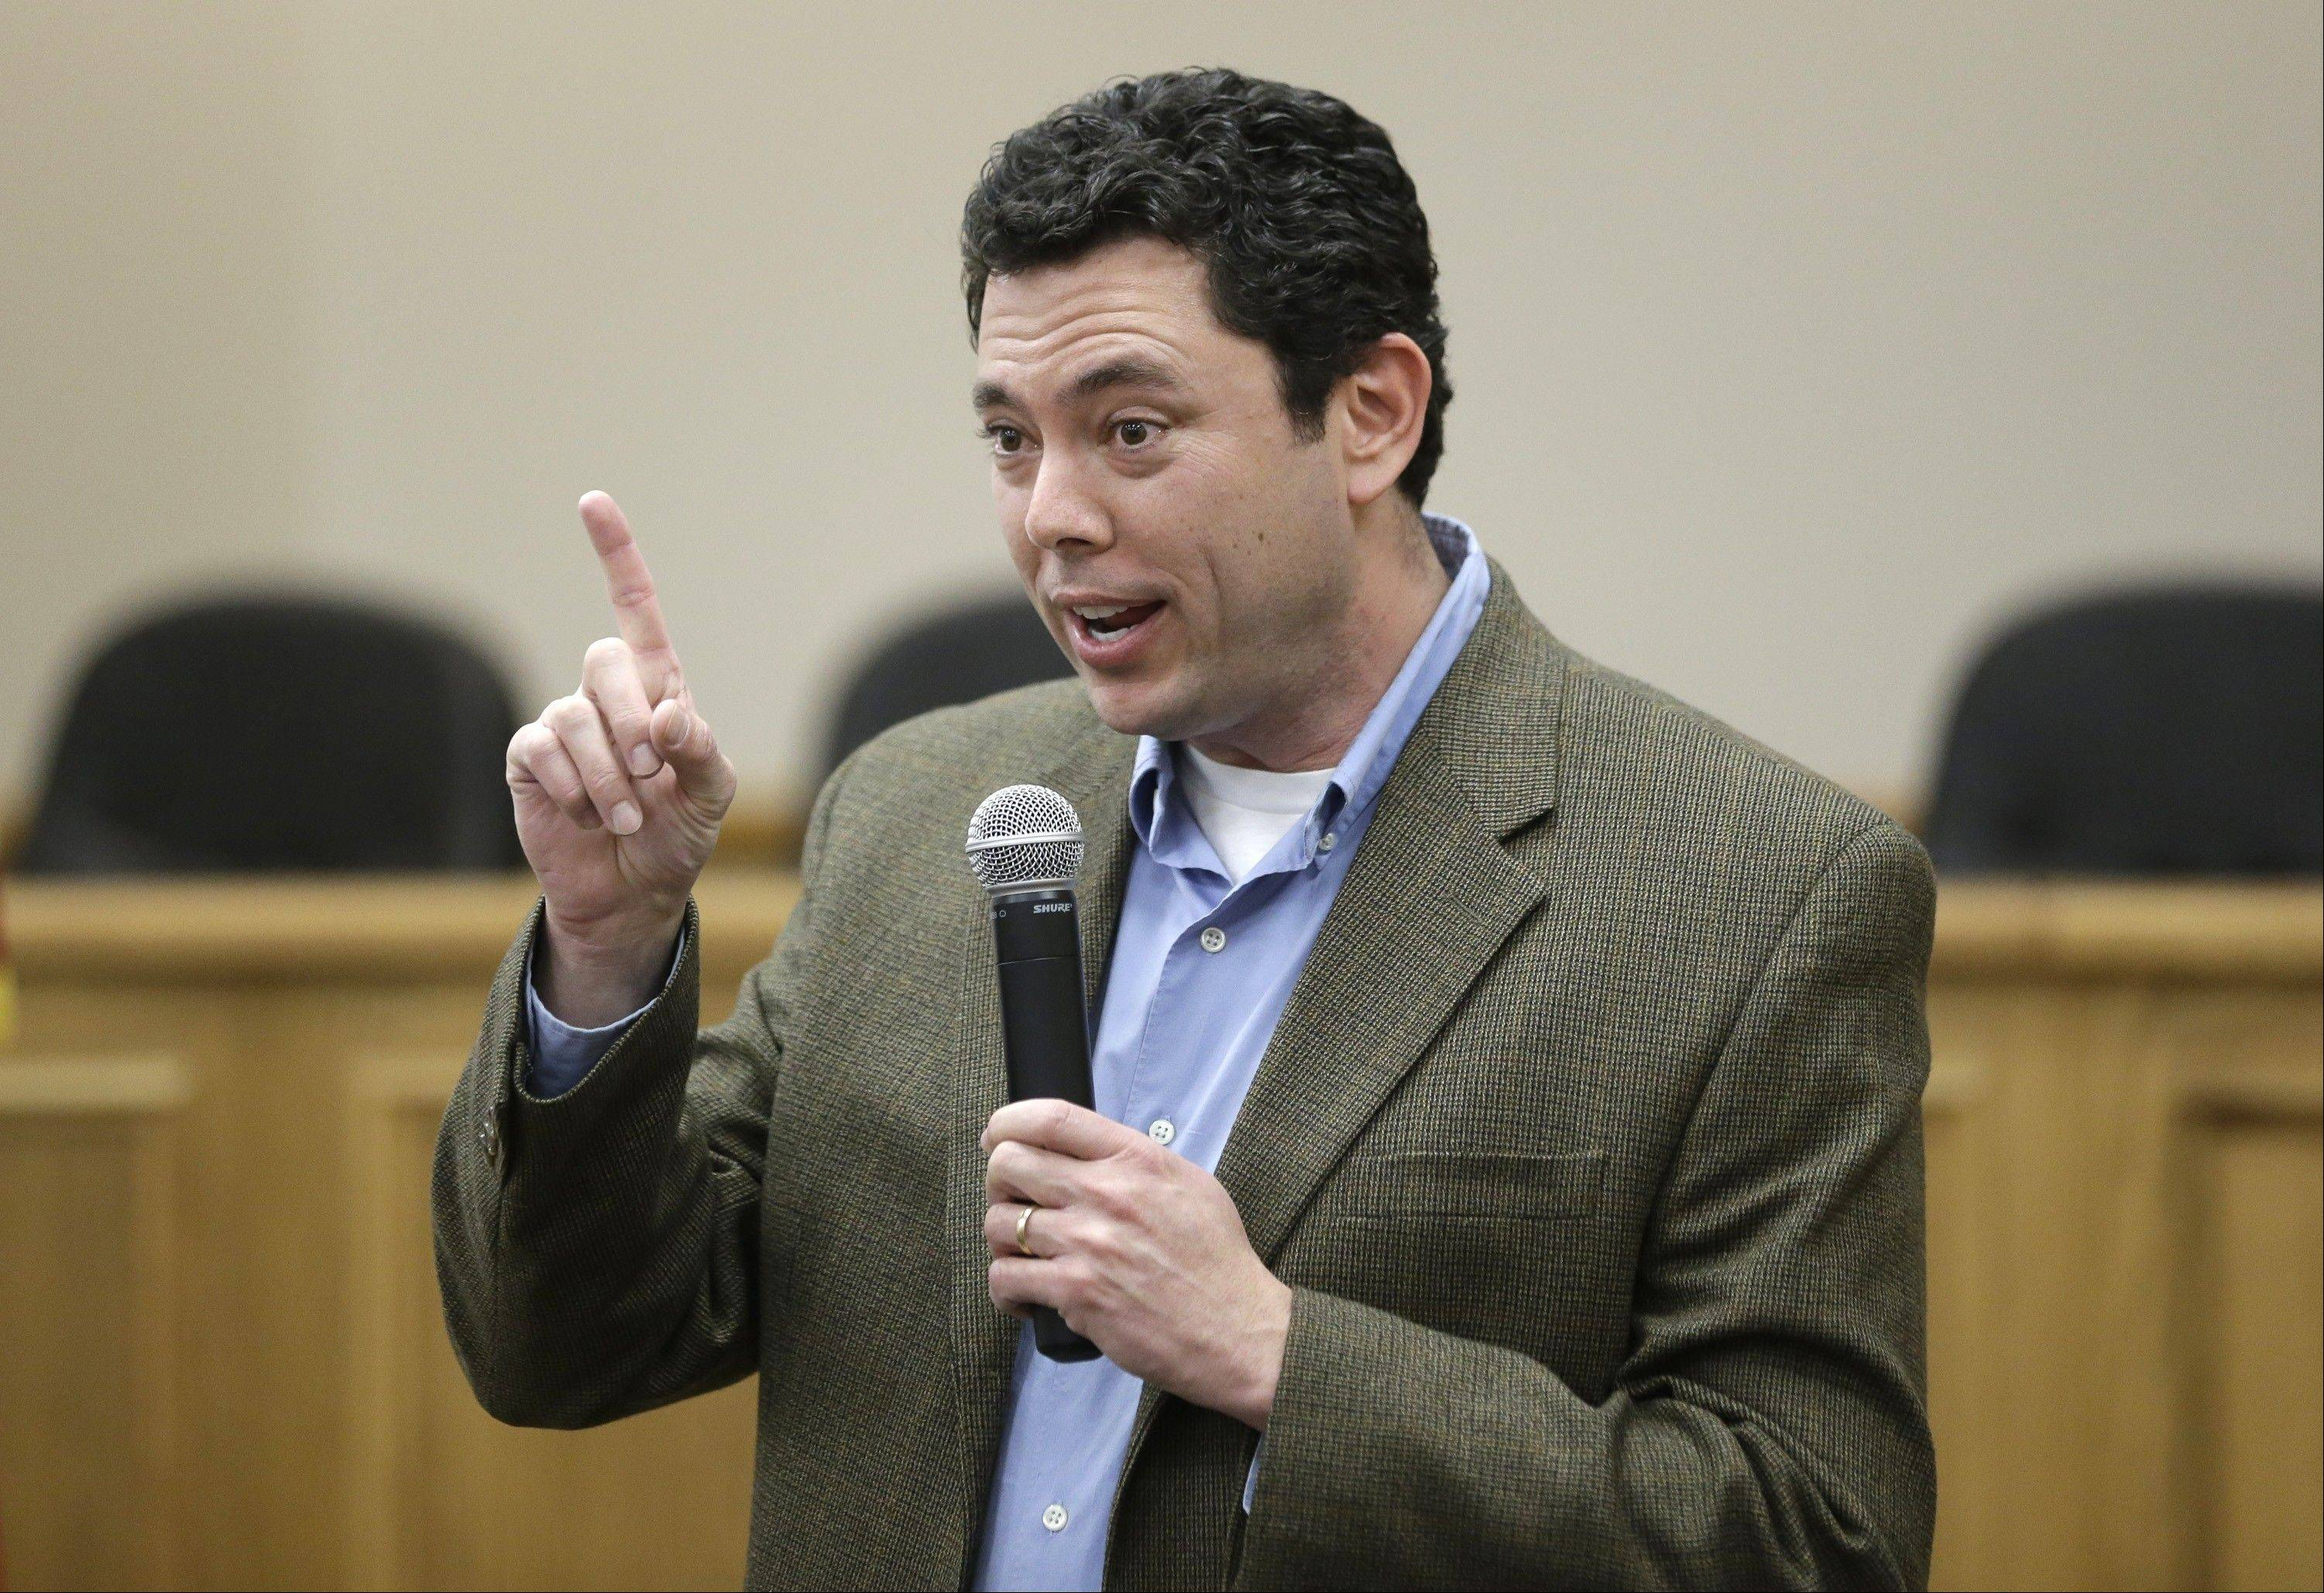 Rep. Jason Chaffetz, R-Utah, makes remarks during a town-hall meeting in Heber City, Utah. Chaffetz flew home from Washington last week to attend the town hall meeting. Many voters here and in similar communities elsewhere still want to do whatever it takes to stop President Obama, and the politicians they elect are listening.